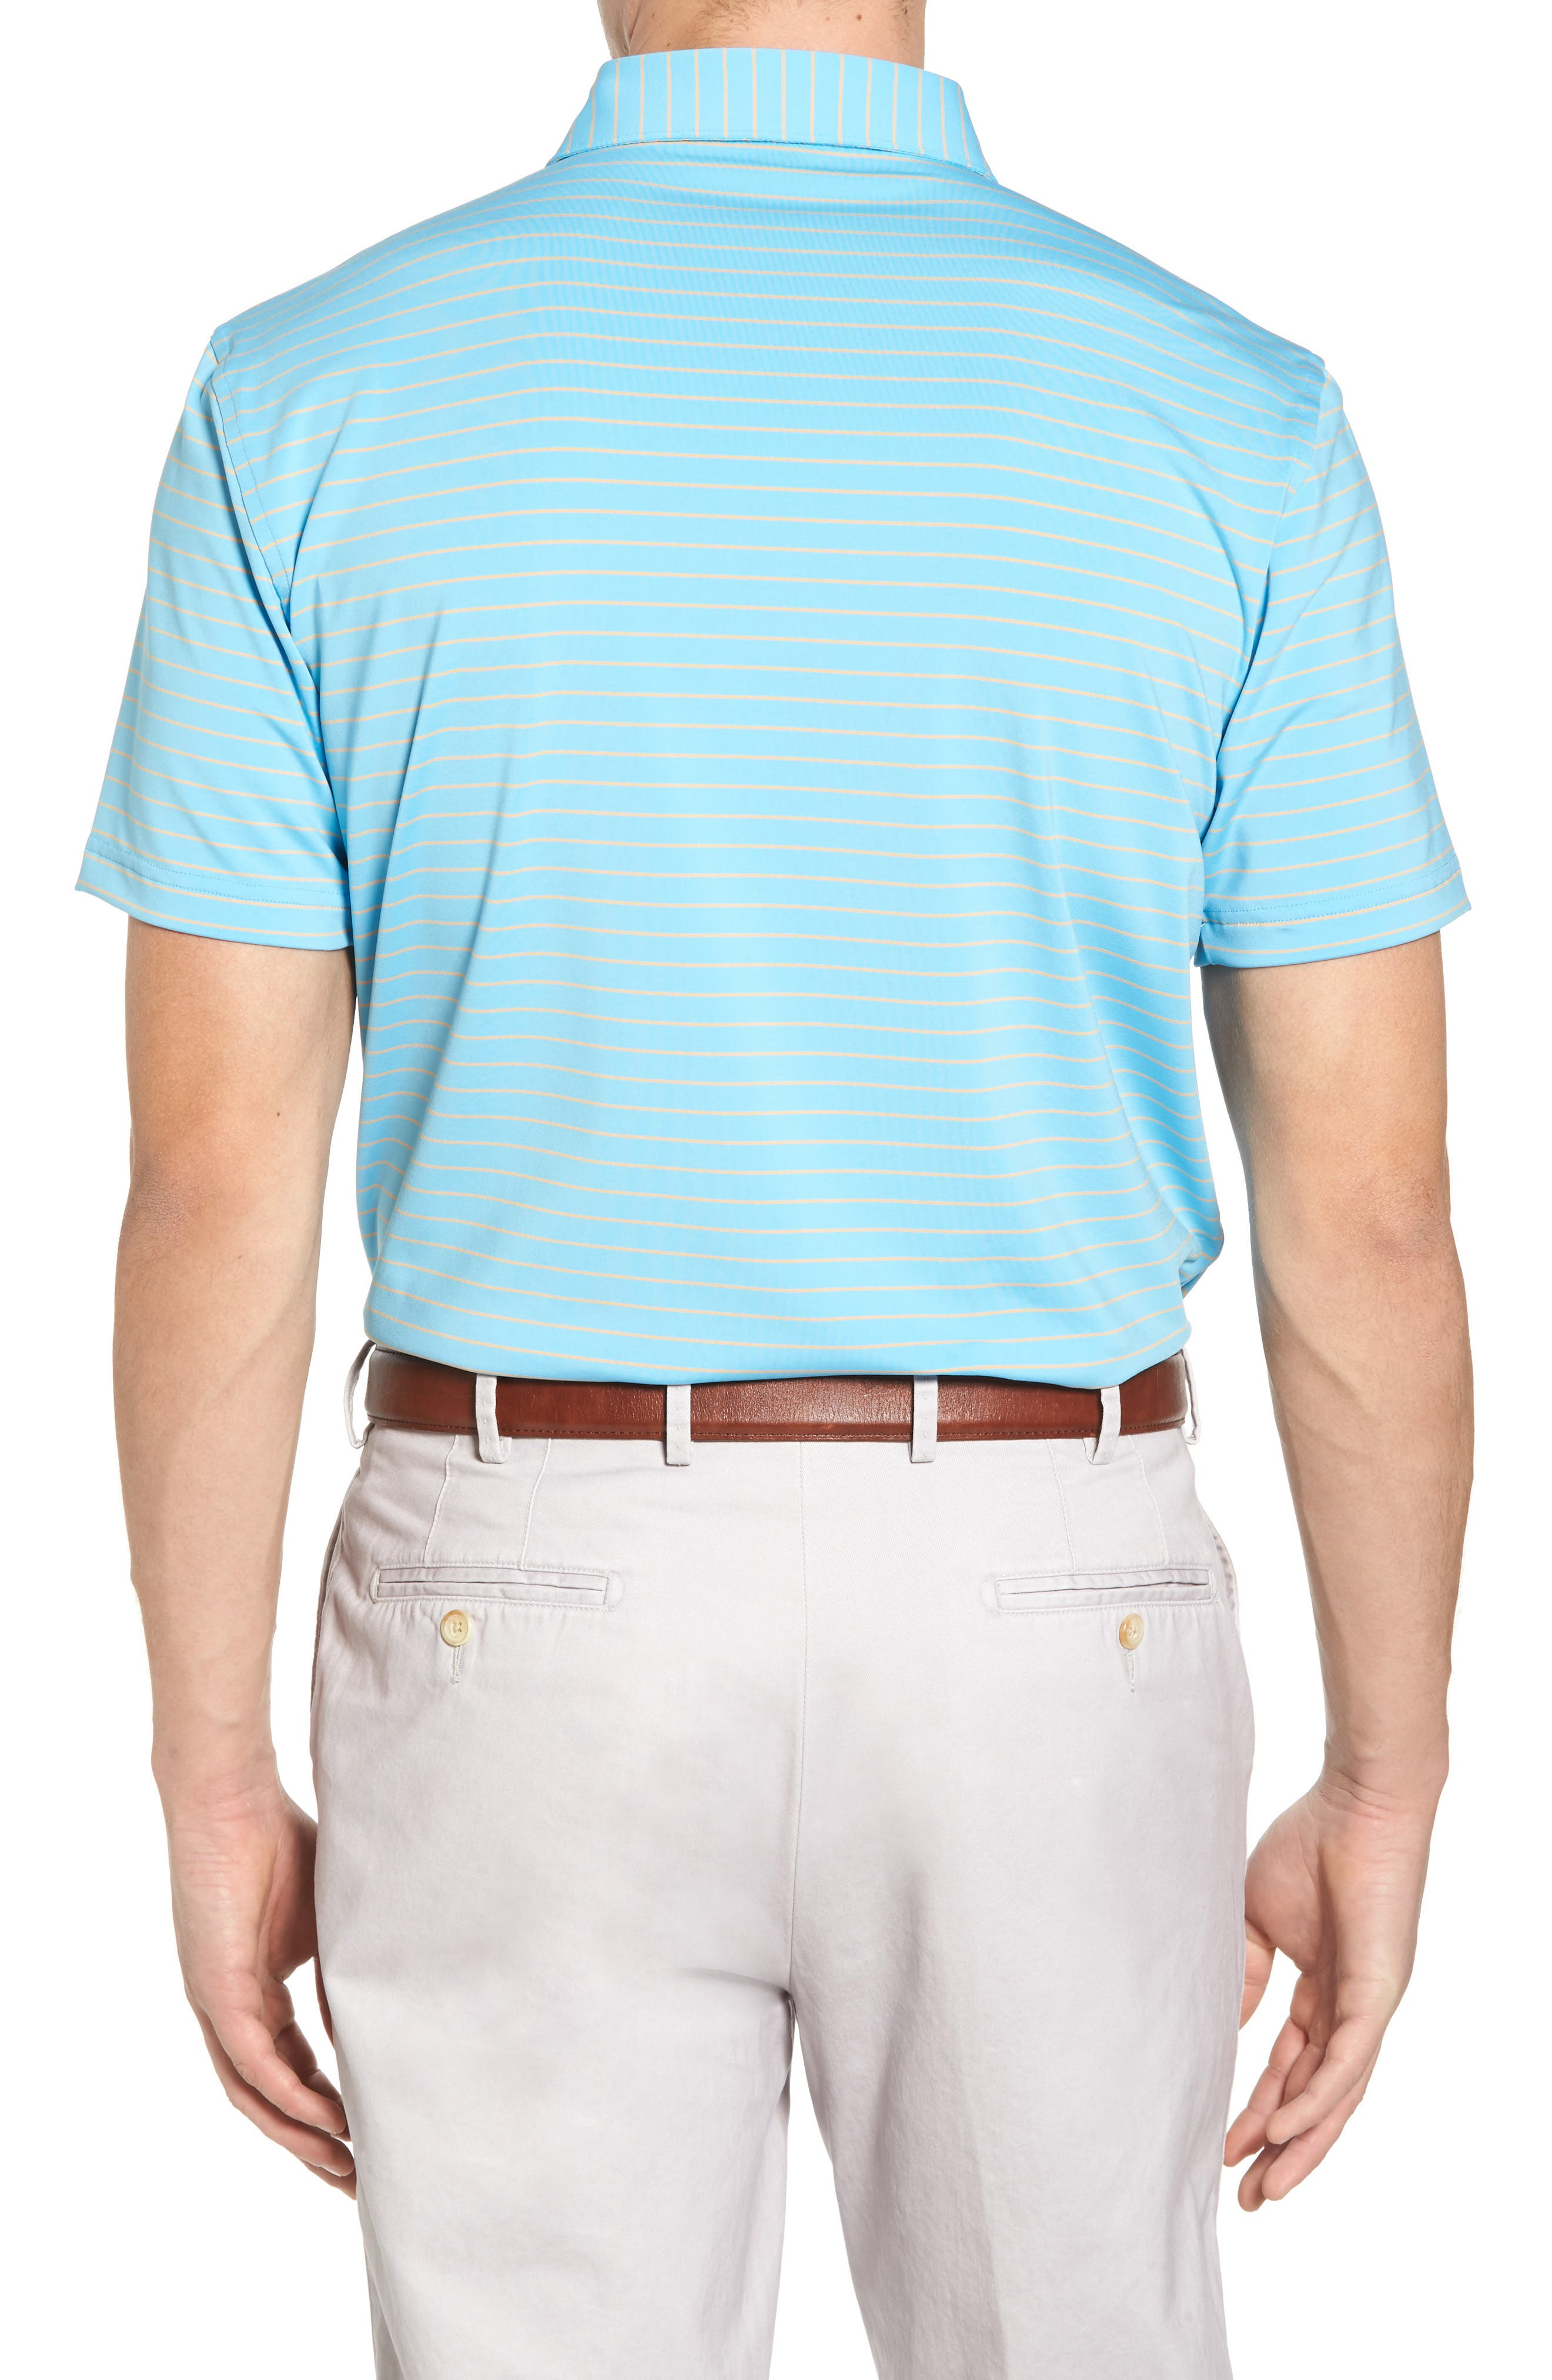 Halifax Pinstripe Stretch Jersey Polo,                             Alternate thumbnail 2, color,                             477